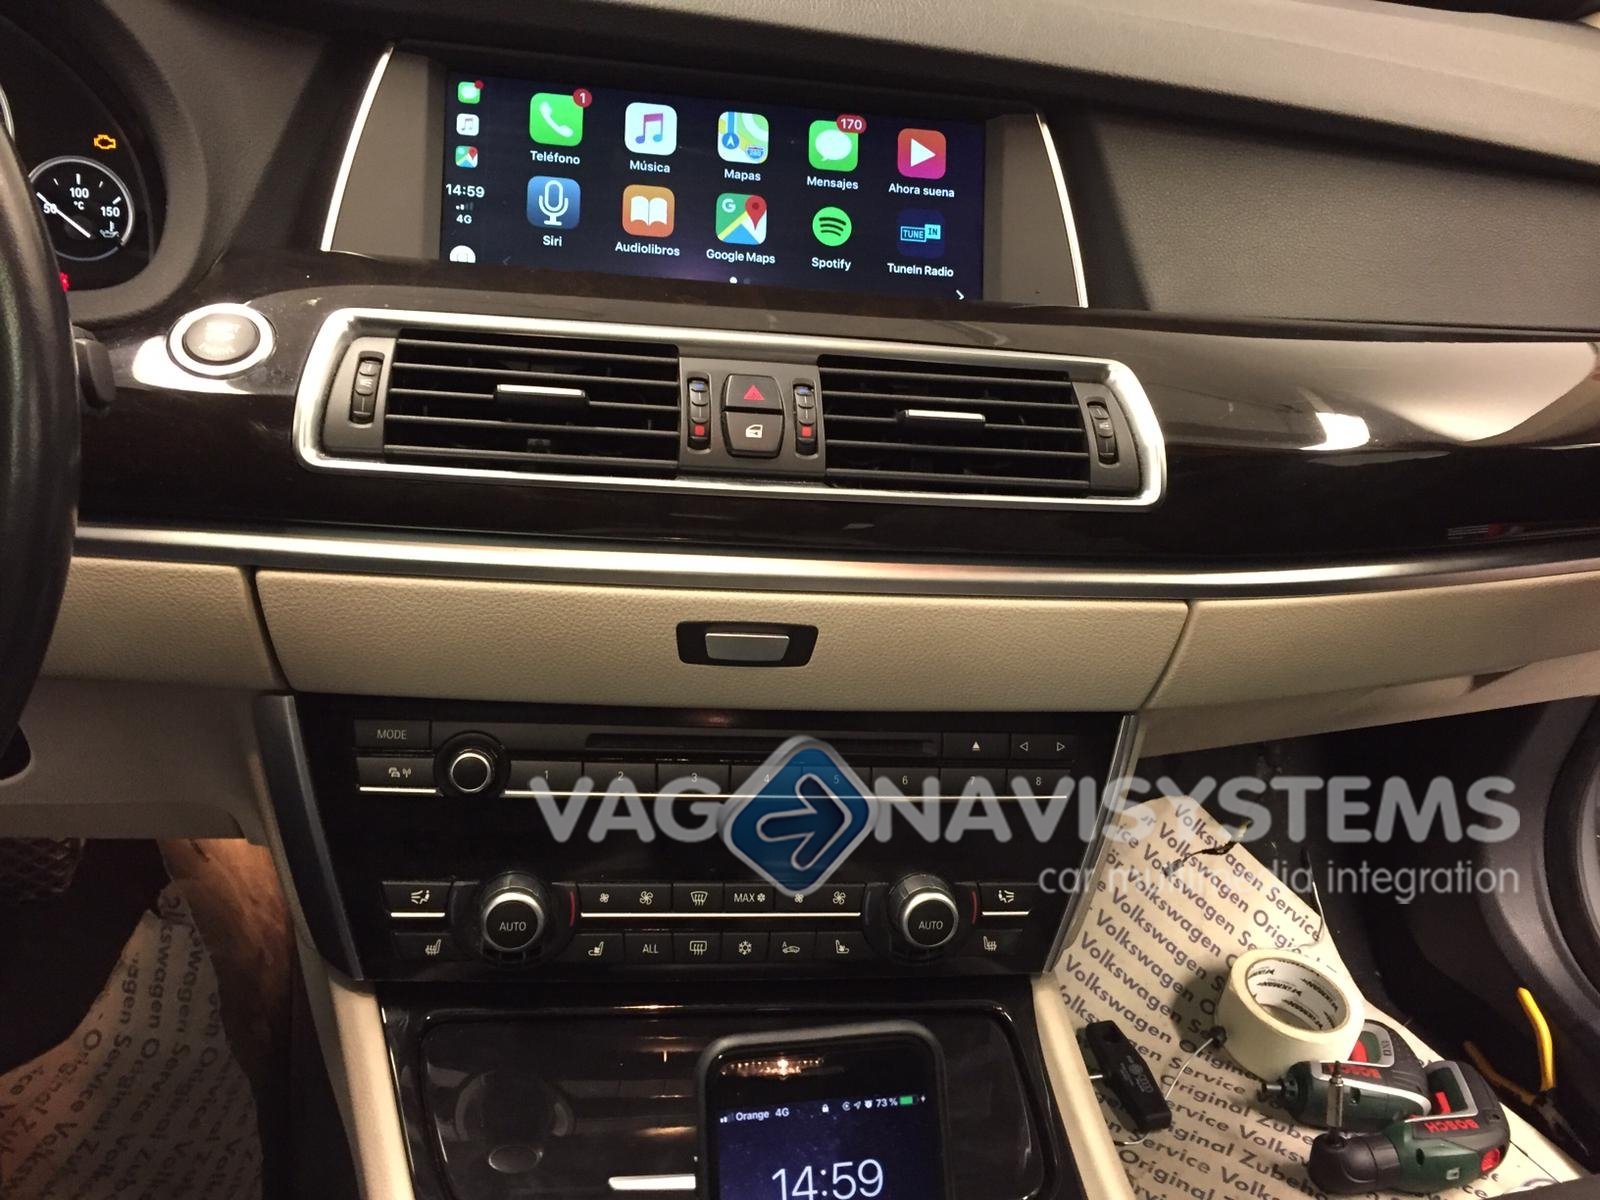 Bmw Serie 1 3 5 6 7 X1 X3 X5 And Mini R56 Apple Carplay Android Auto Interface Plug Play Carplay Link 3 Gt F34 Vag Navisystems